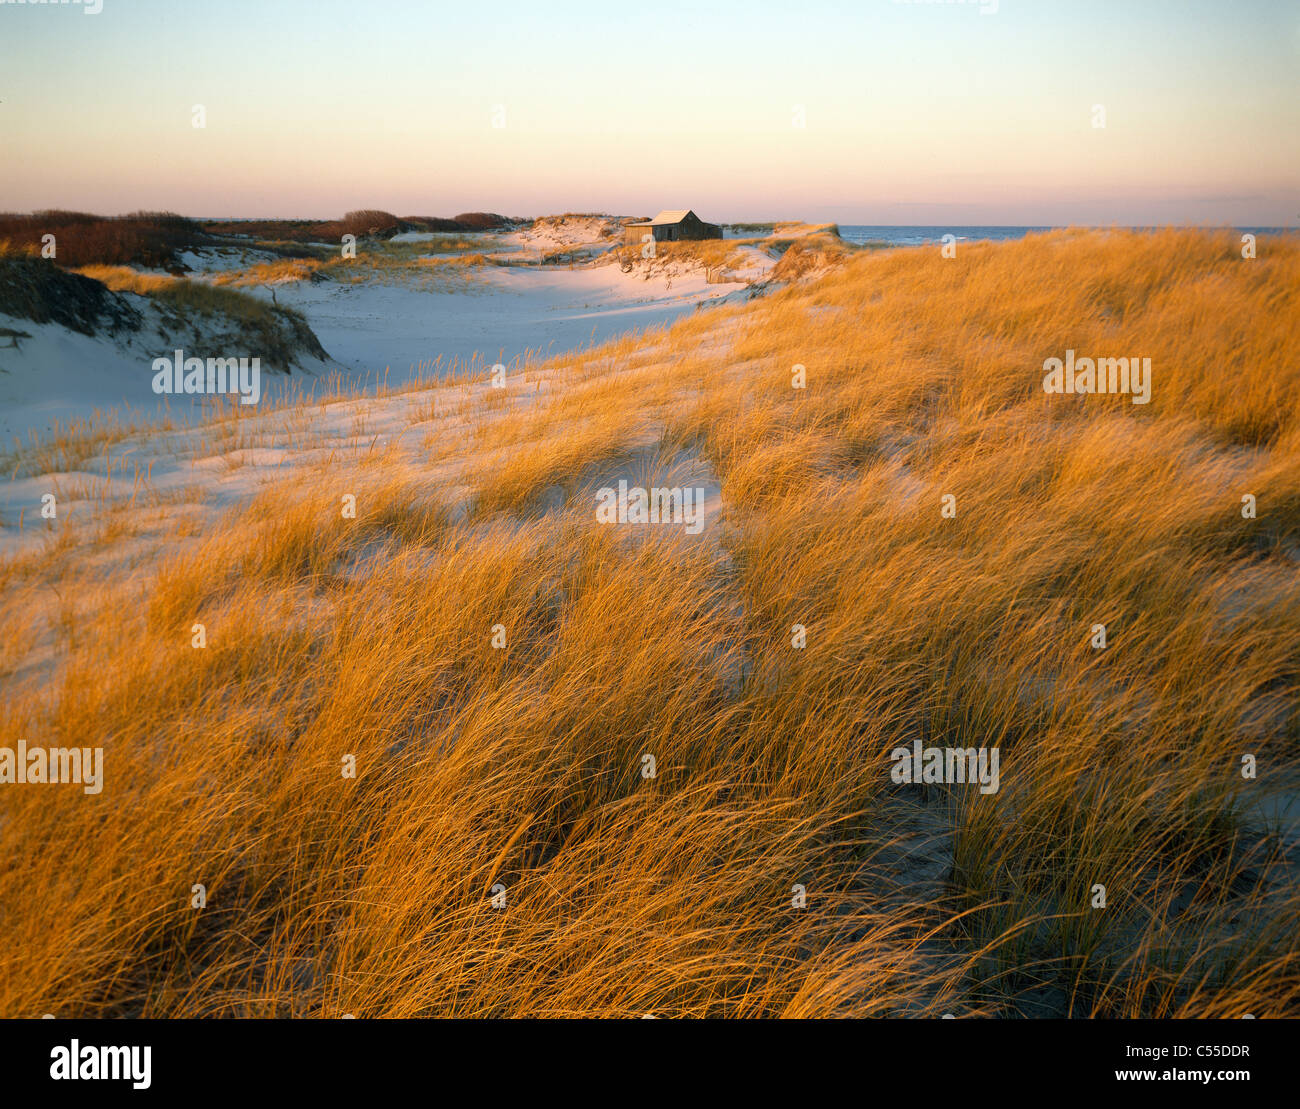 Island Beach State Park Nj: USA, New Jersey, Island Beach State Park, Yellow Marram